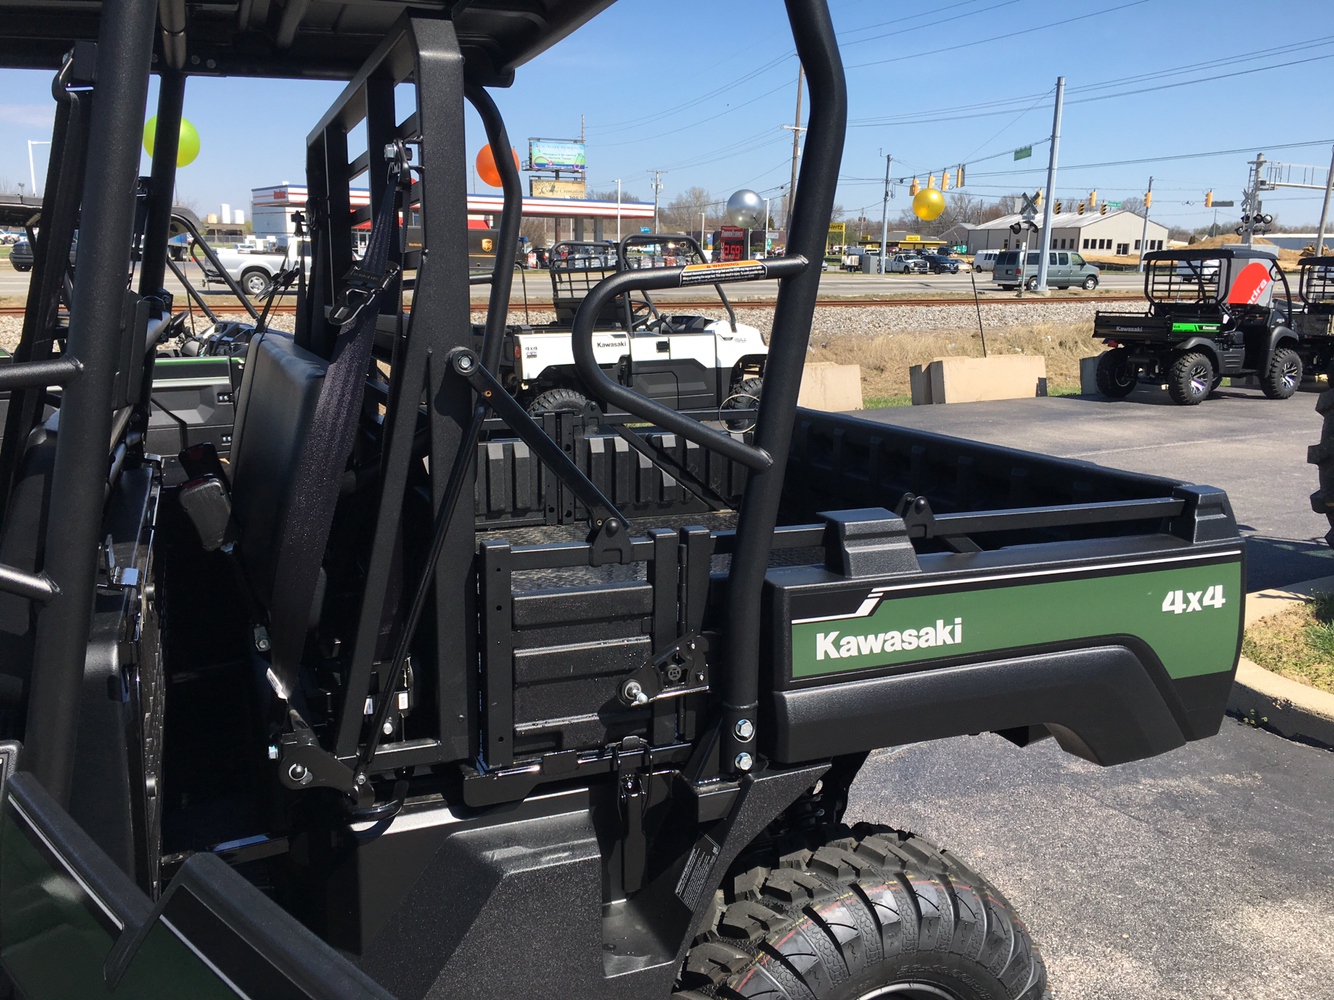 2019 Kawasaki Mule PRO-FXT EPS in Evansville, Indiana - Photo 24